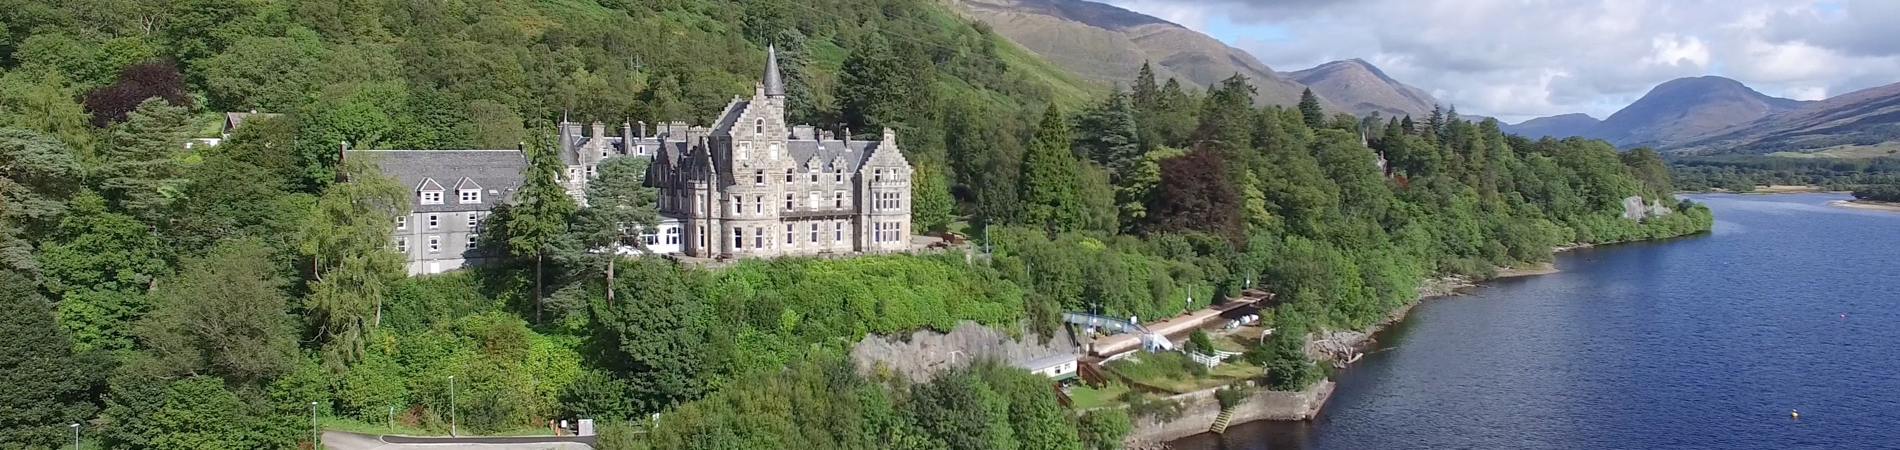 The Loch Awe Hotel overlooking the Loch Awe - Lochs & Glens Coach Holidays and Hotels